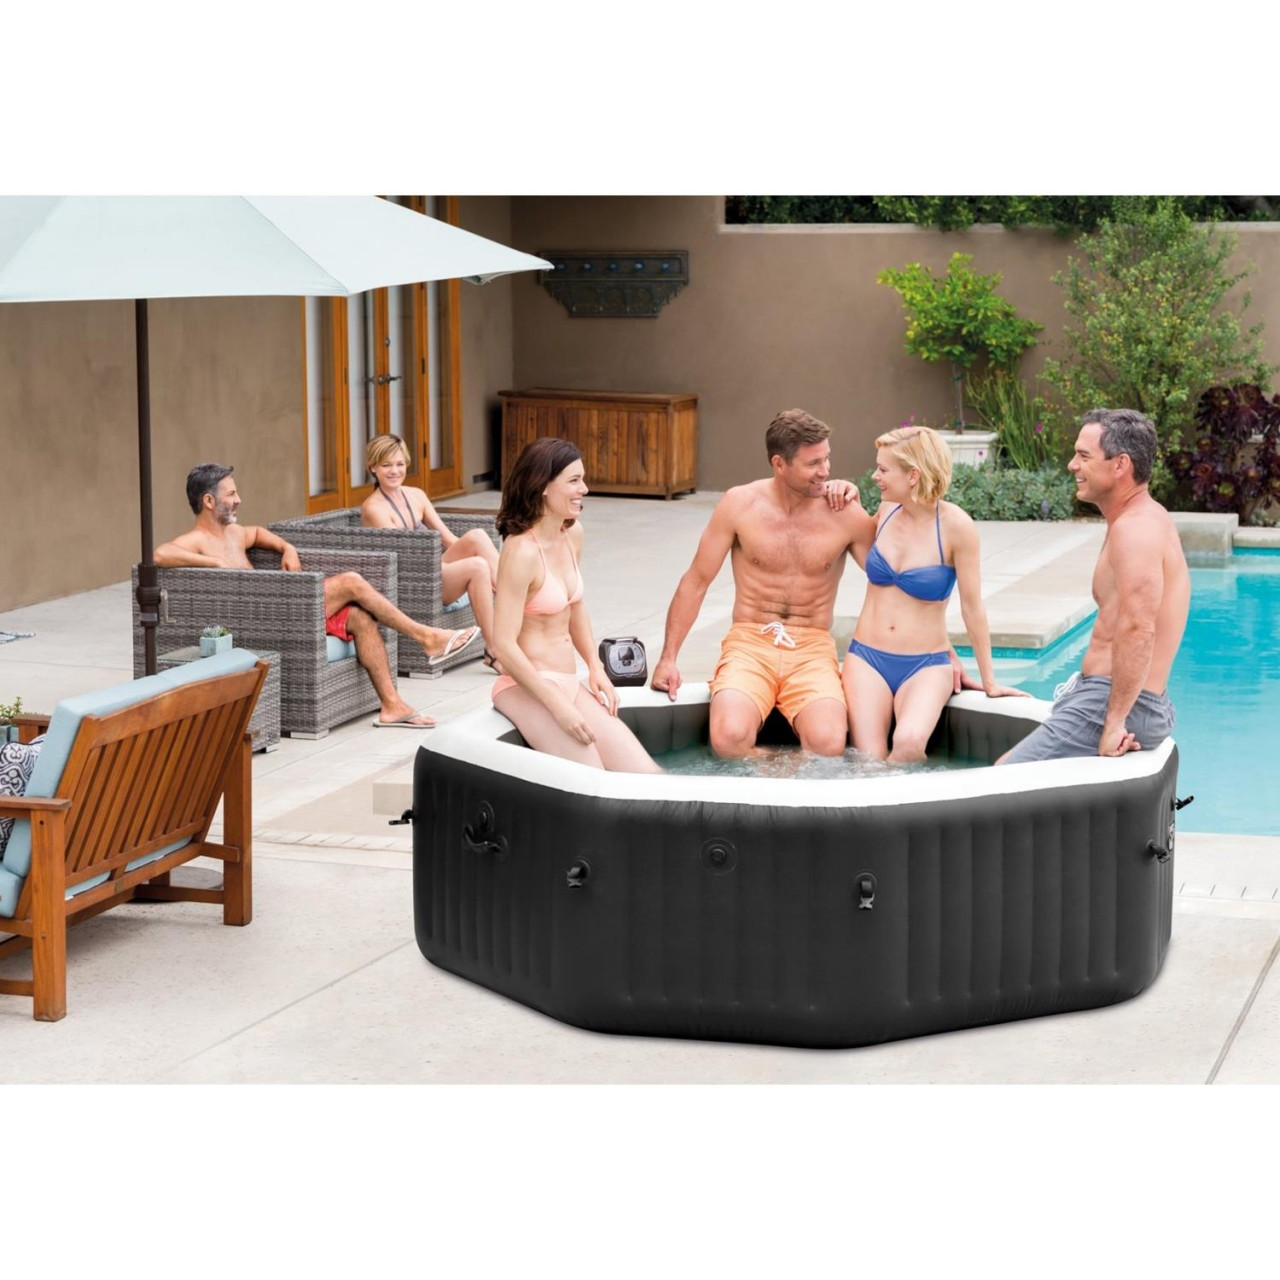 Intex Whirlpool Spa Jet Bubble Massage Becken Salzwassersystem Kalkschutz 28456